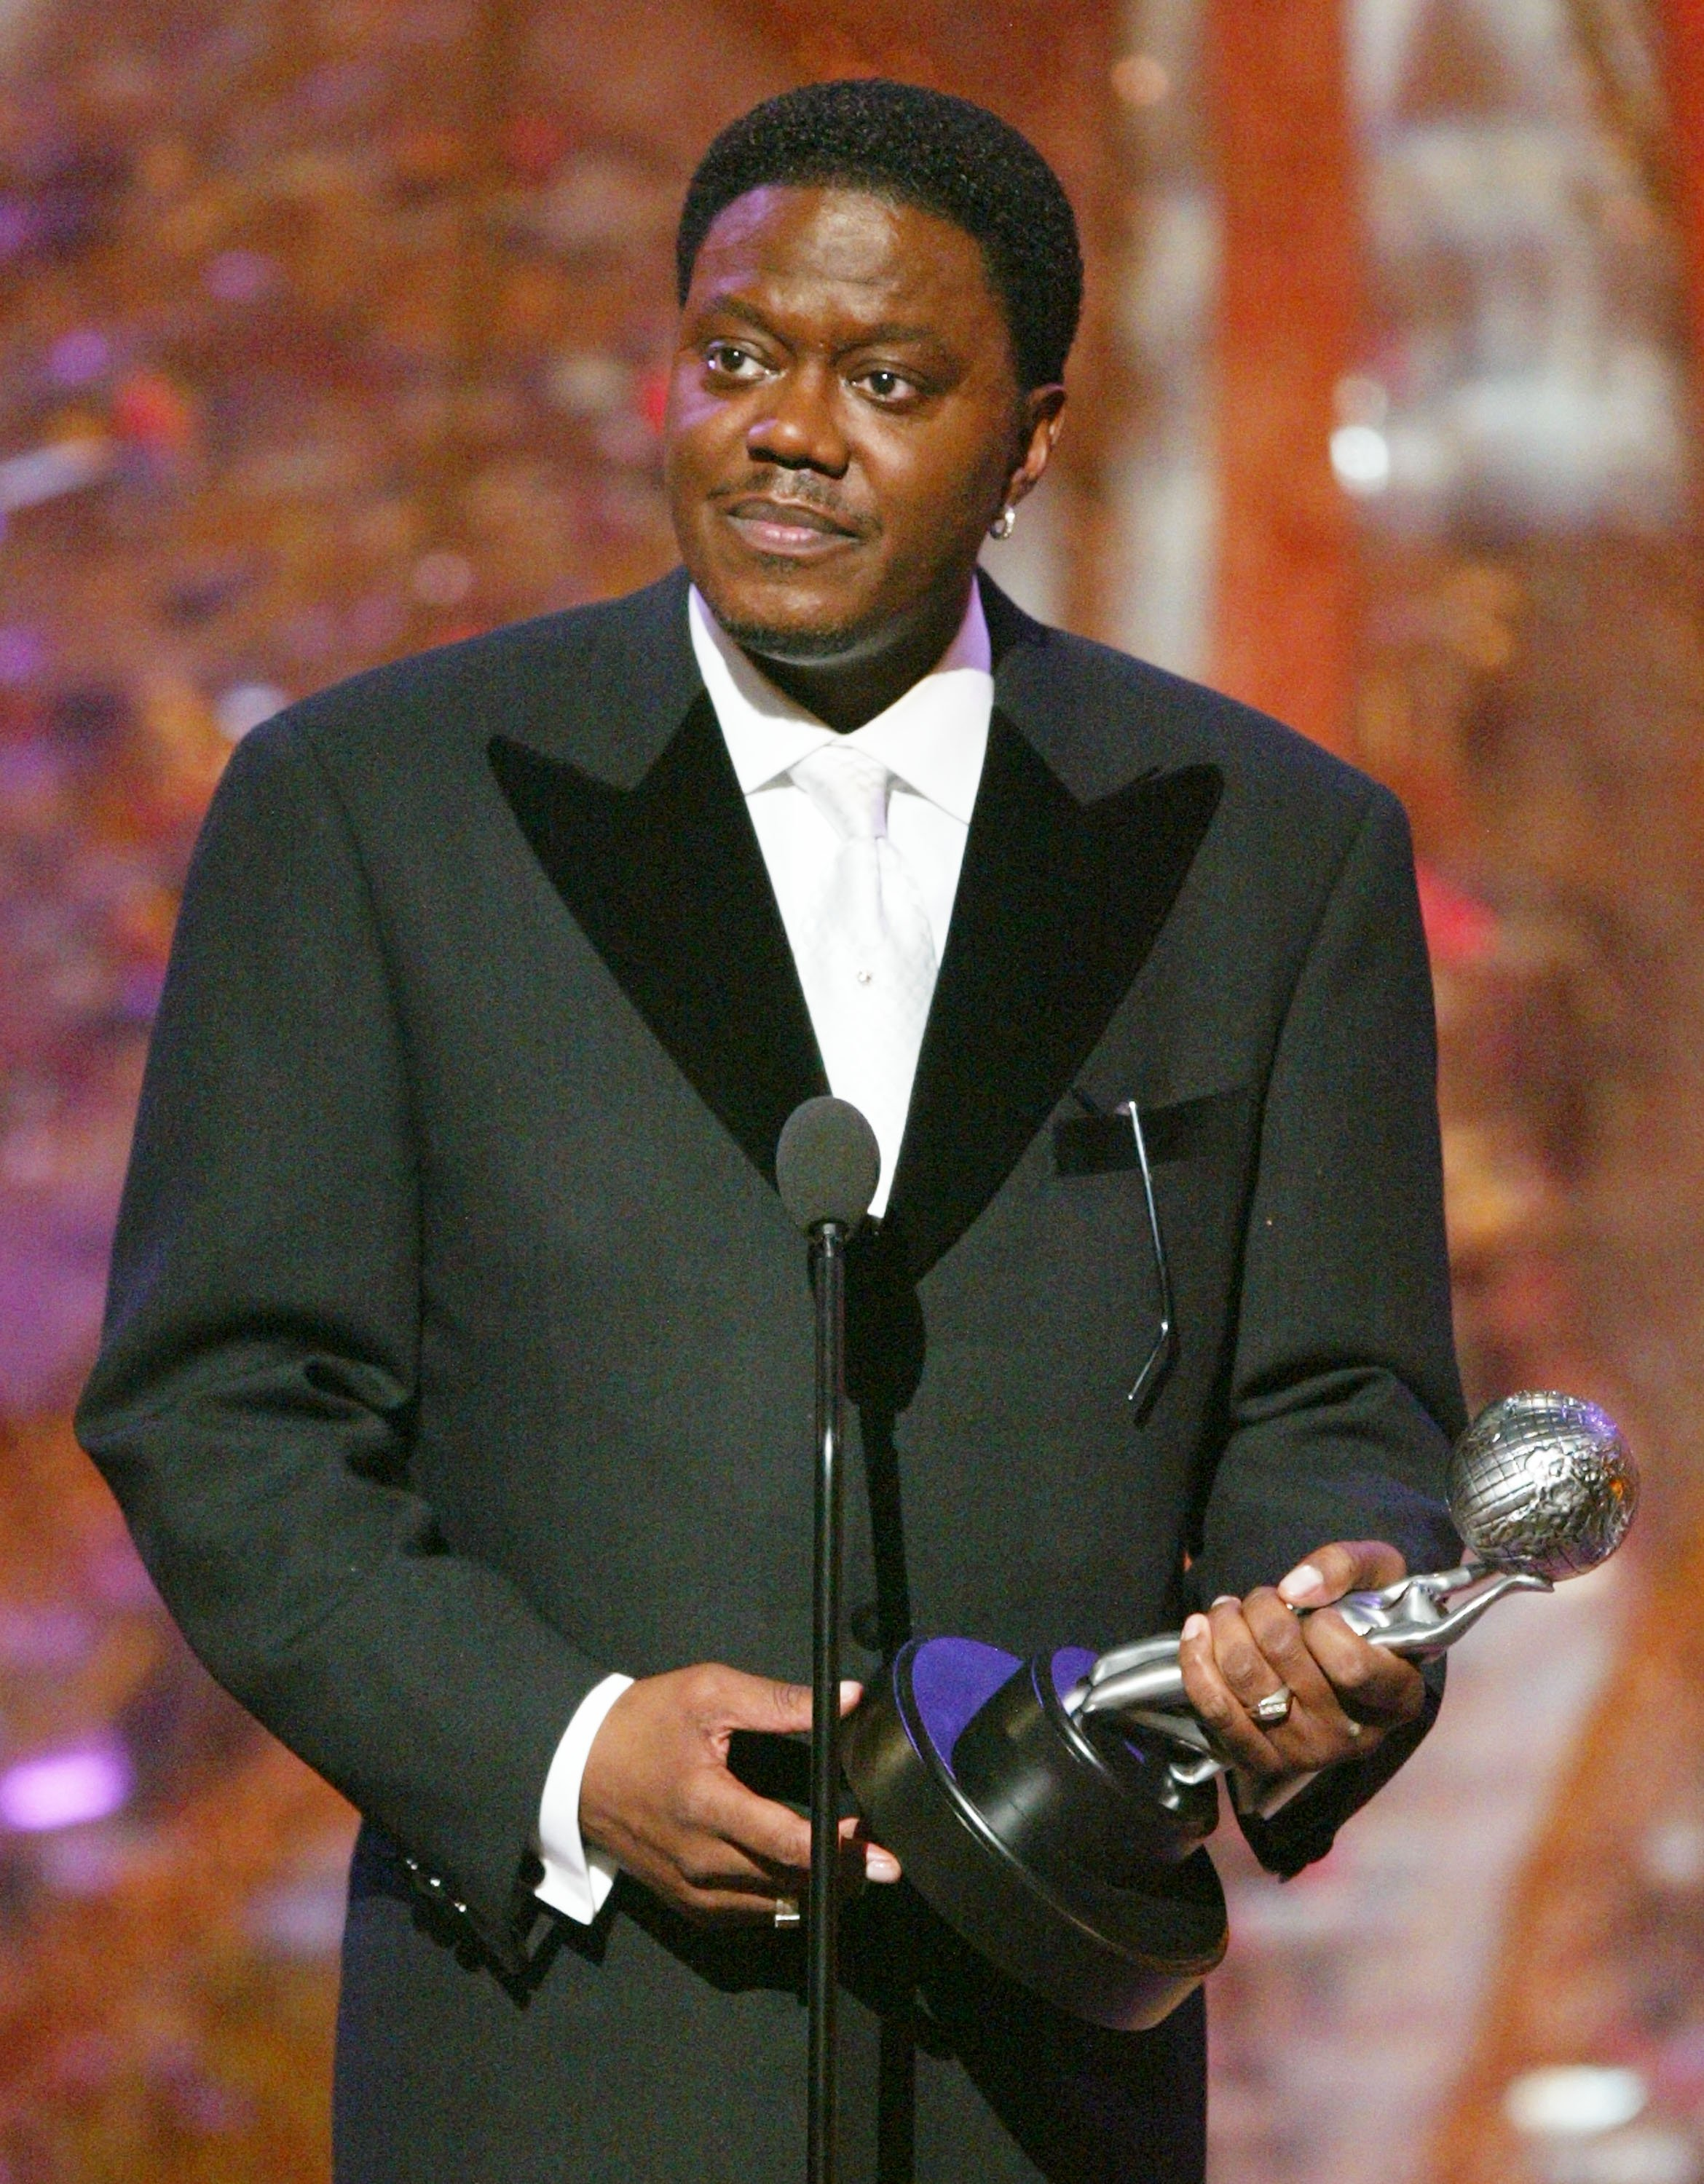 Bernie Mac accepting his award for Best Actor in a Comedy Series on stage at the 35th Annual NAACP Image Awards. | Photo: GettyImages